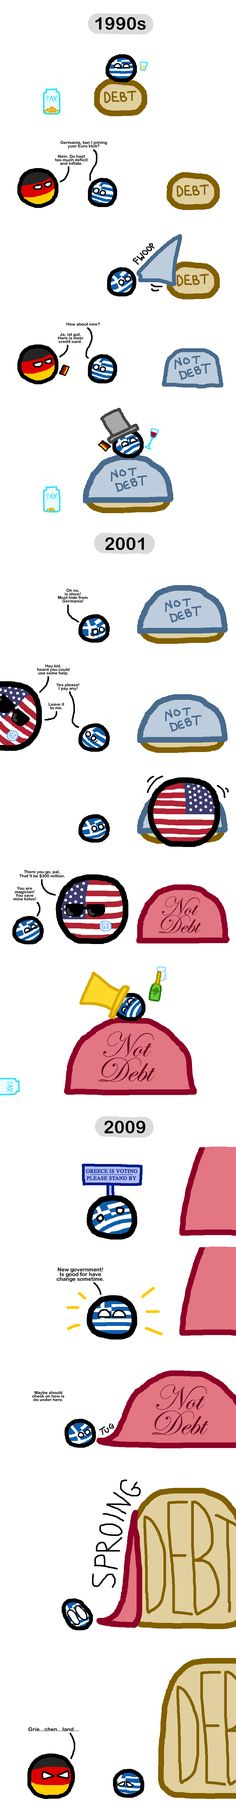 The Eurozone Crisis: Greece's Gambit ( Greece, Germany, USA ) by thesunisup  #polandball #countryball